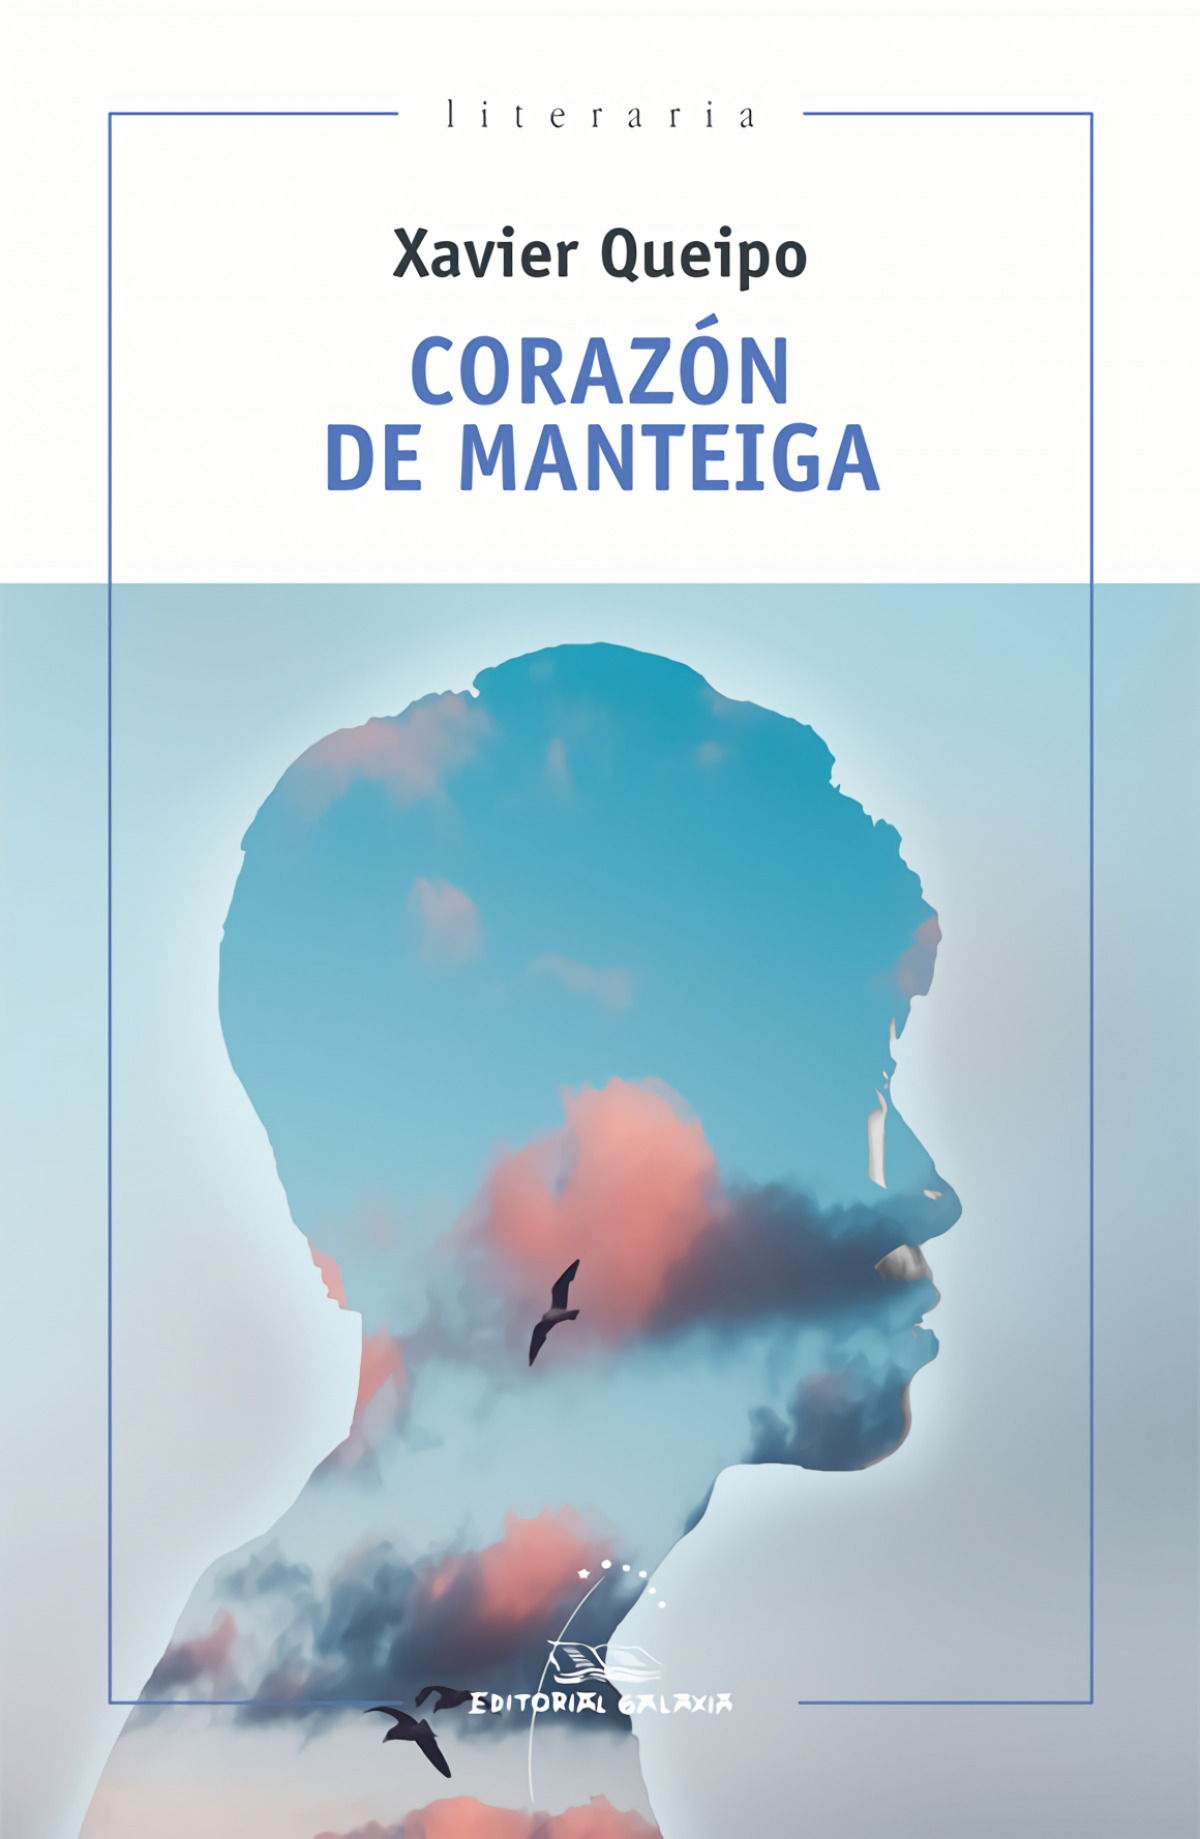 CORAZON DE MANTEIGA